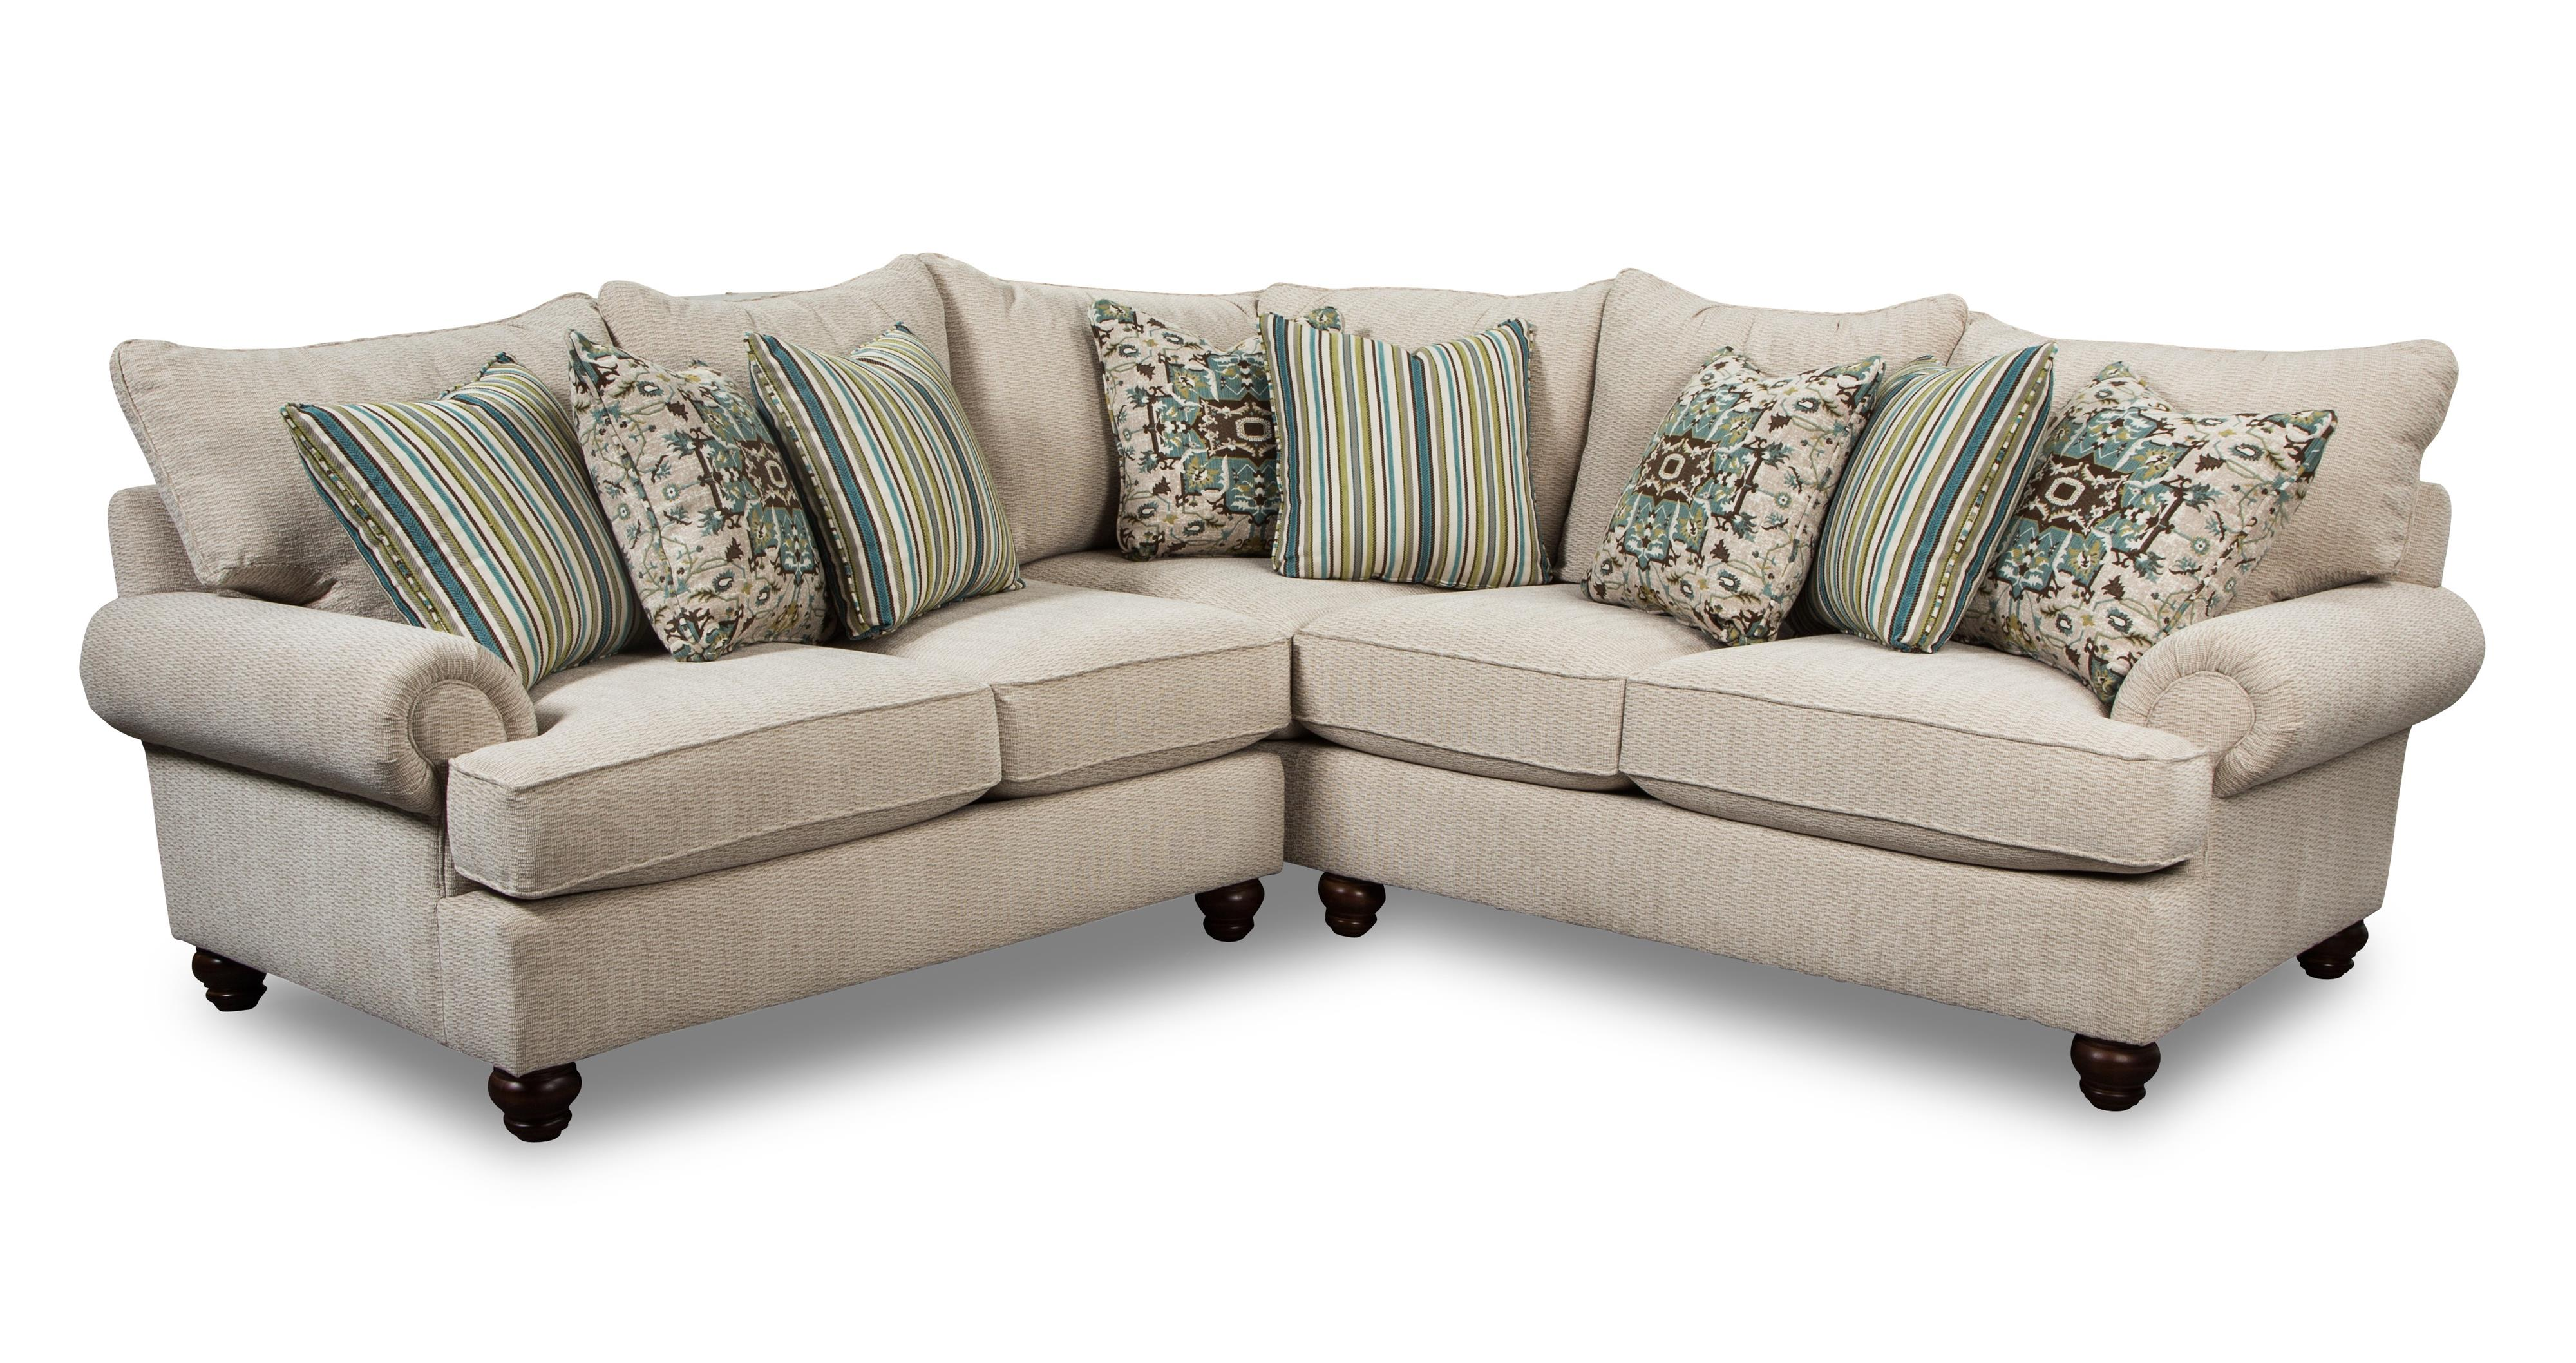 Craftmaster 7970 2 Pc Sectional Sofa Item Number 797032pc 797055pc Virginia